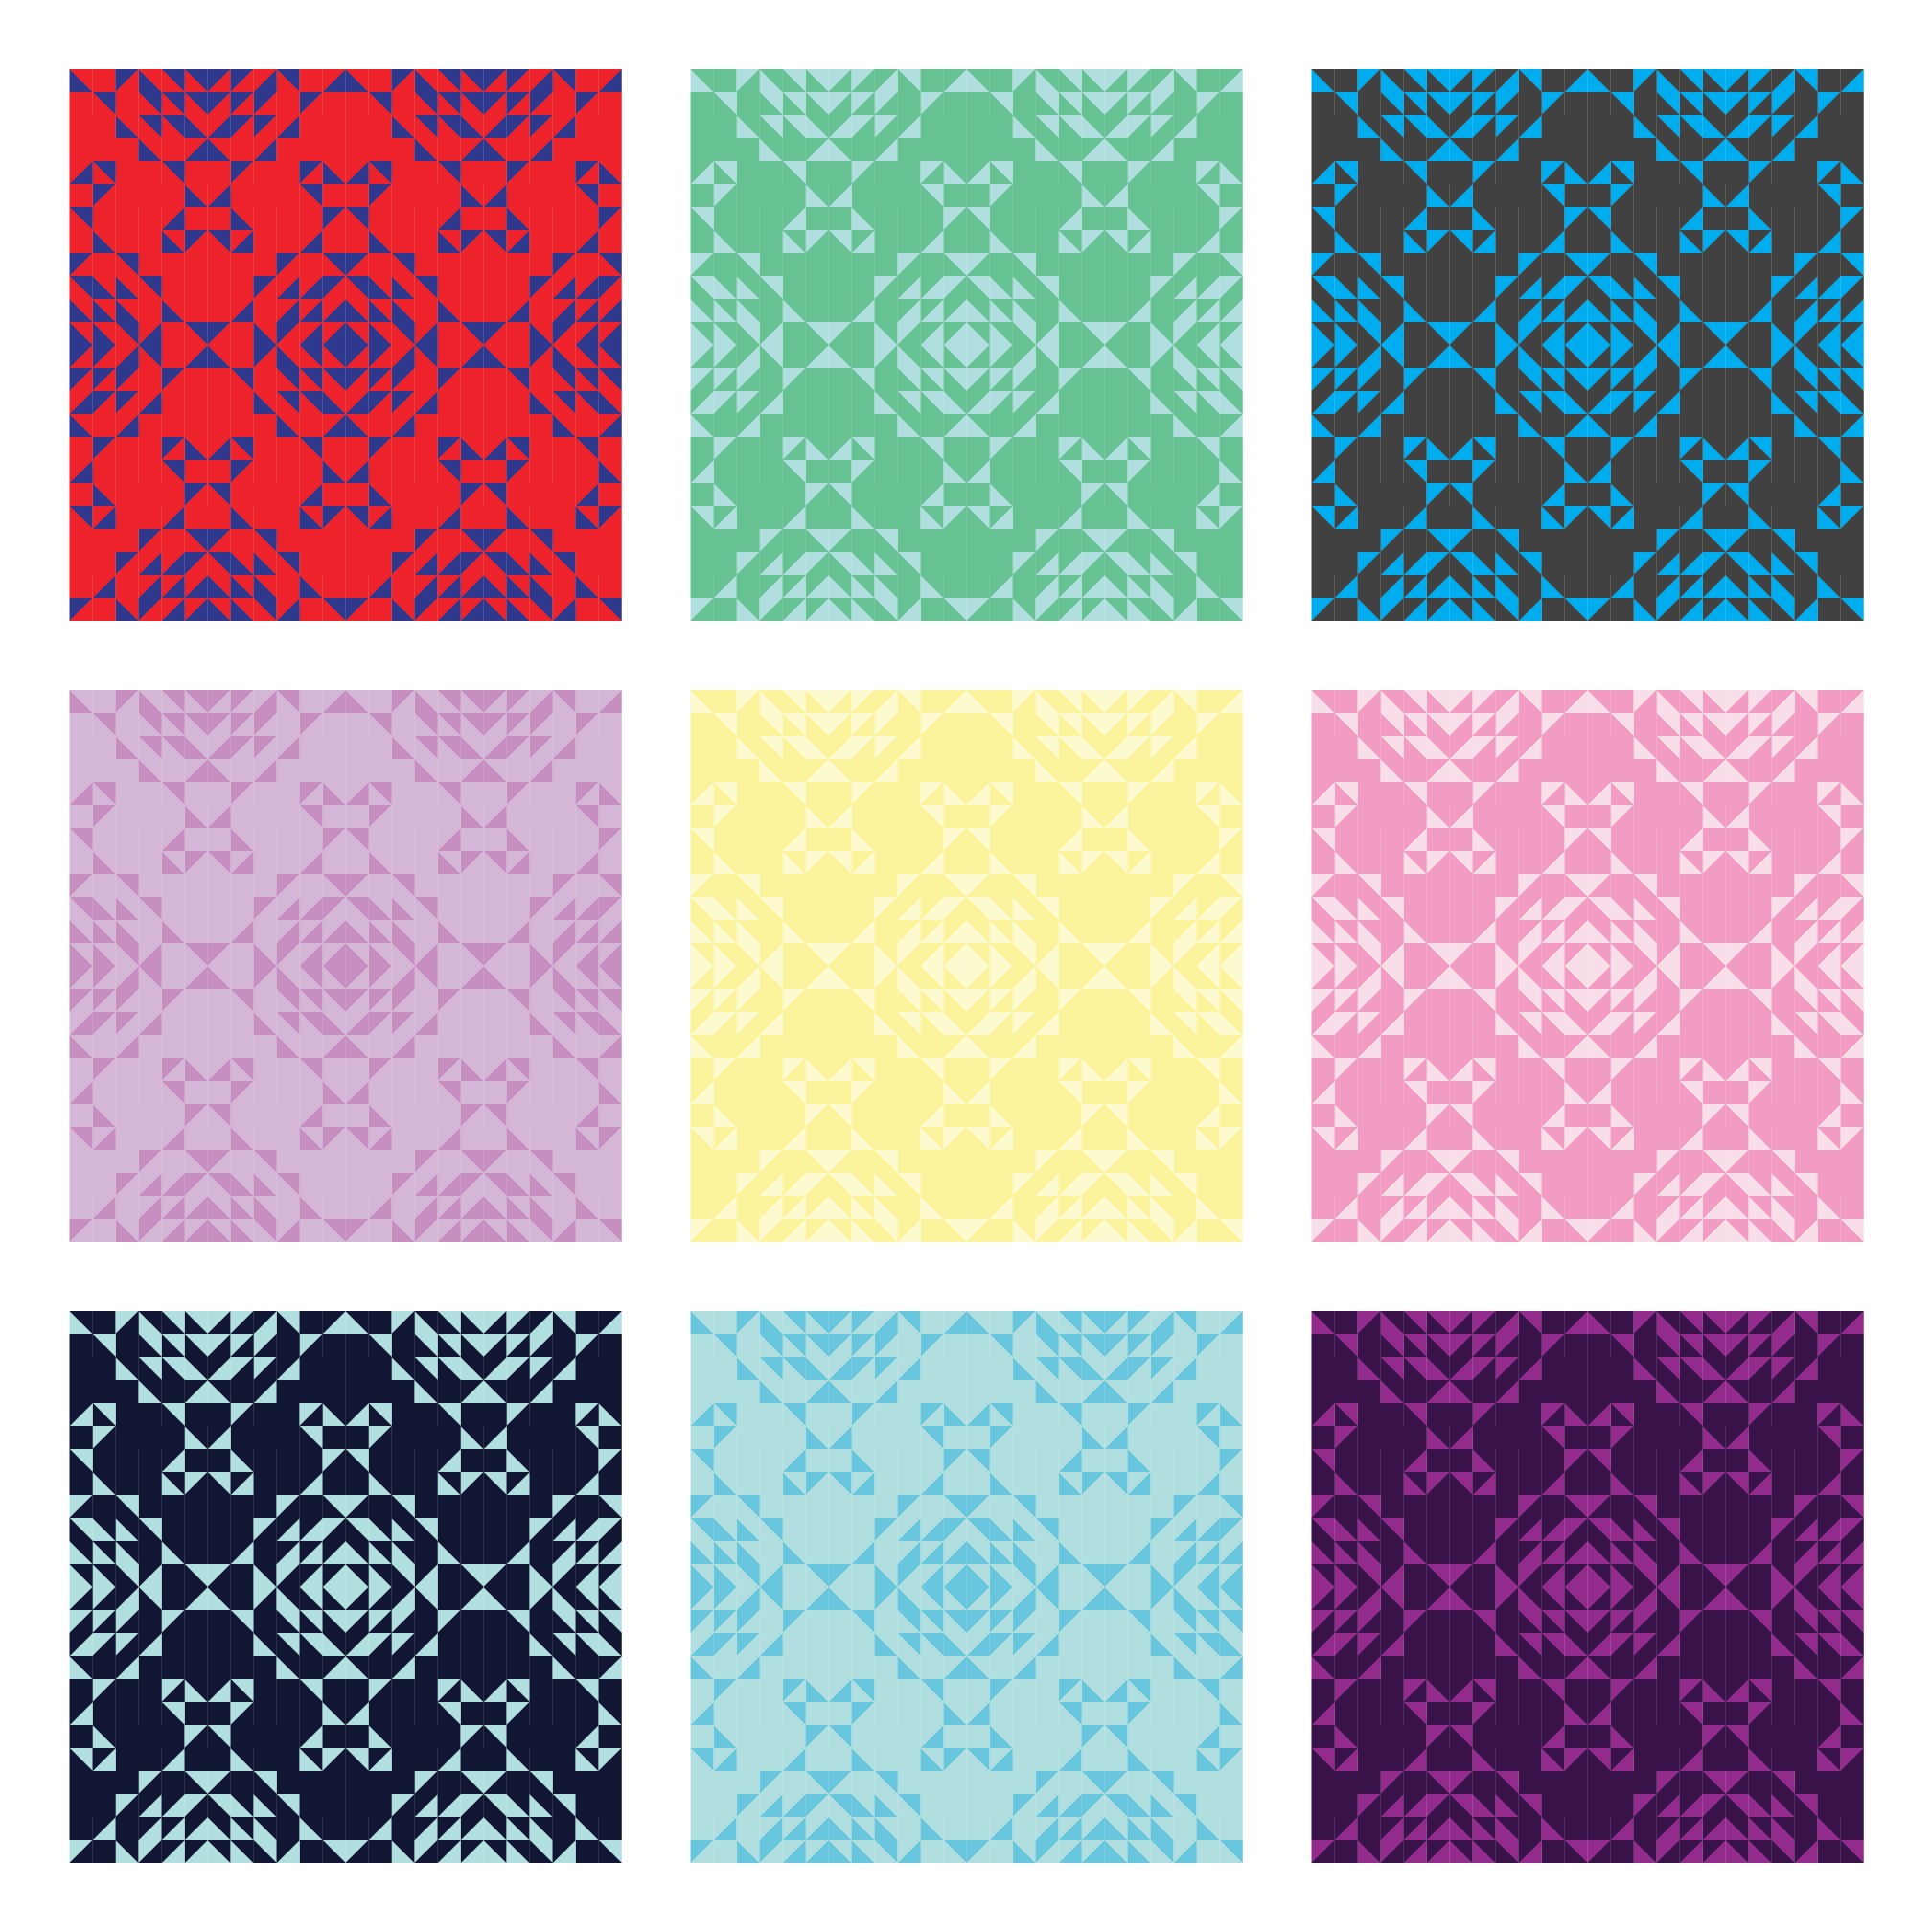 Vintage Lace Quilt 2-color mockups